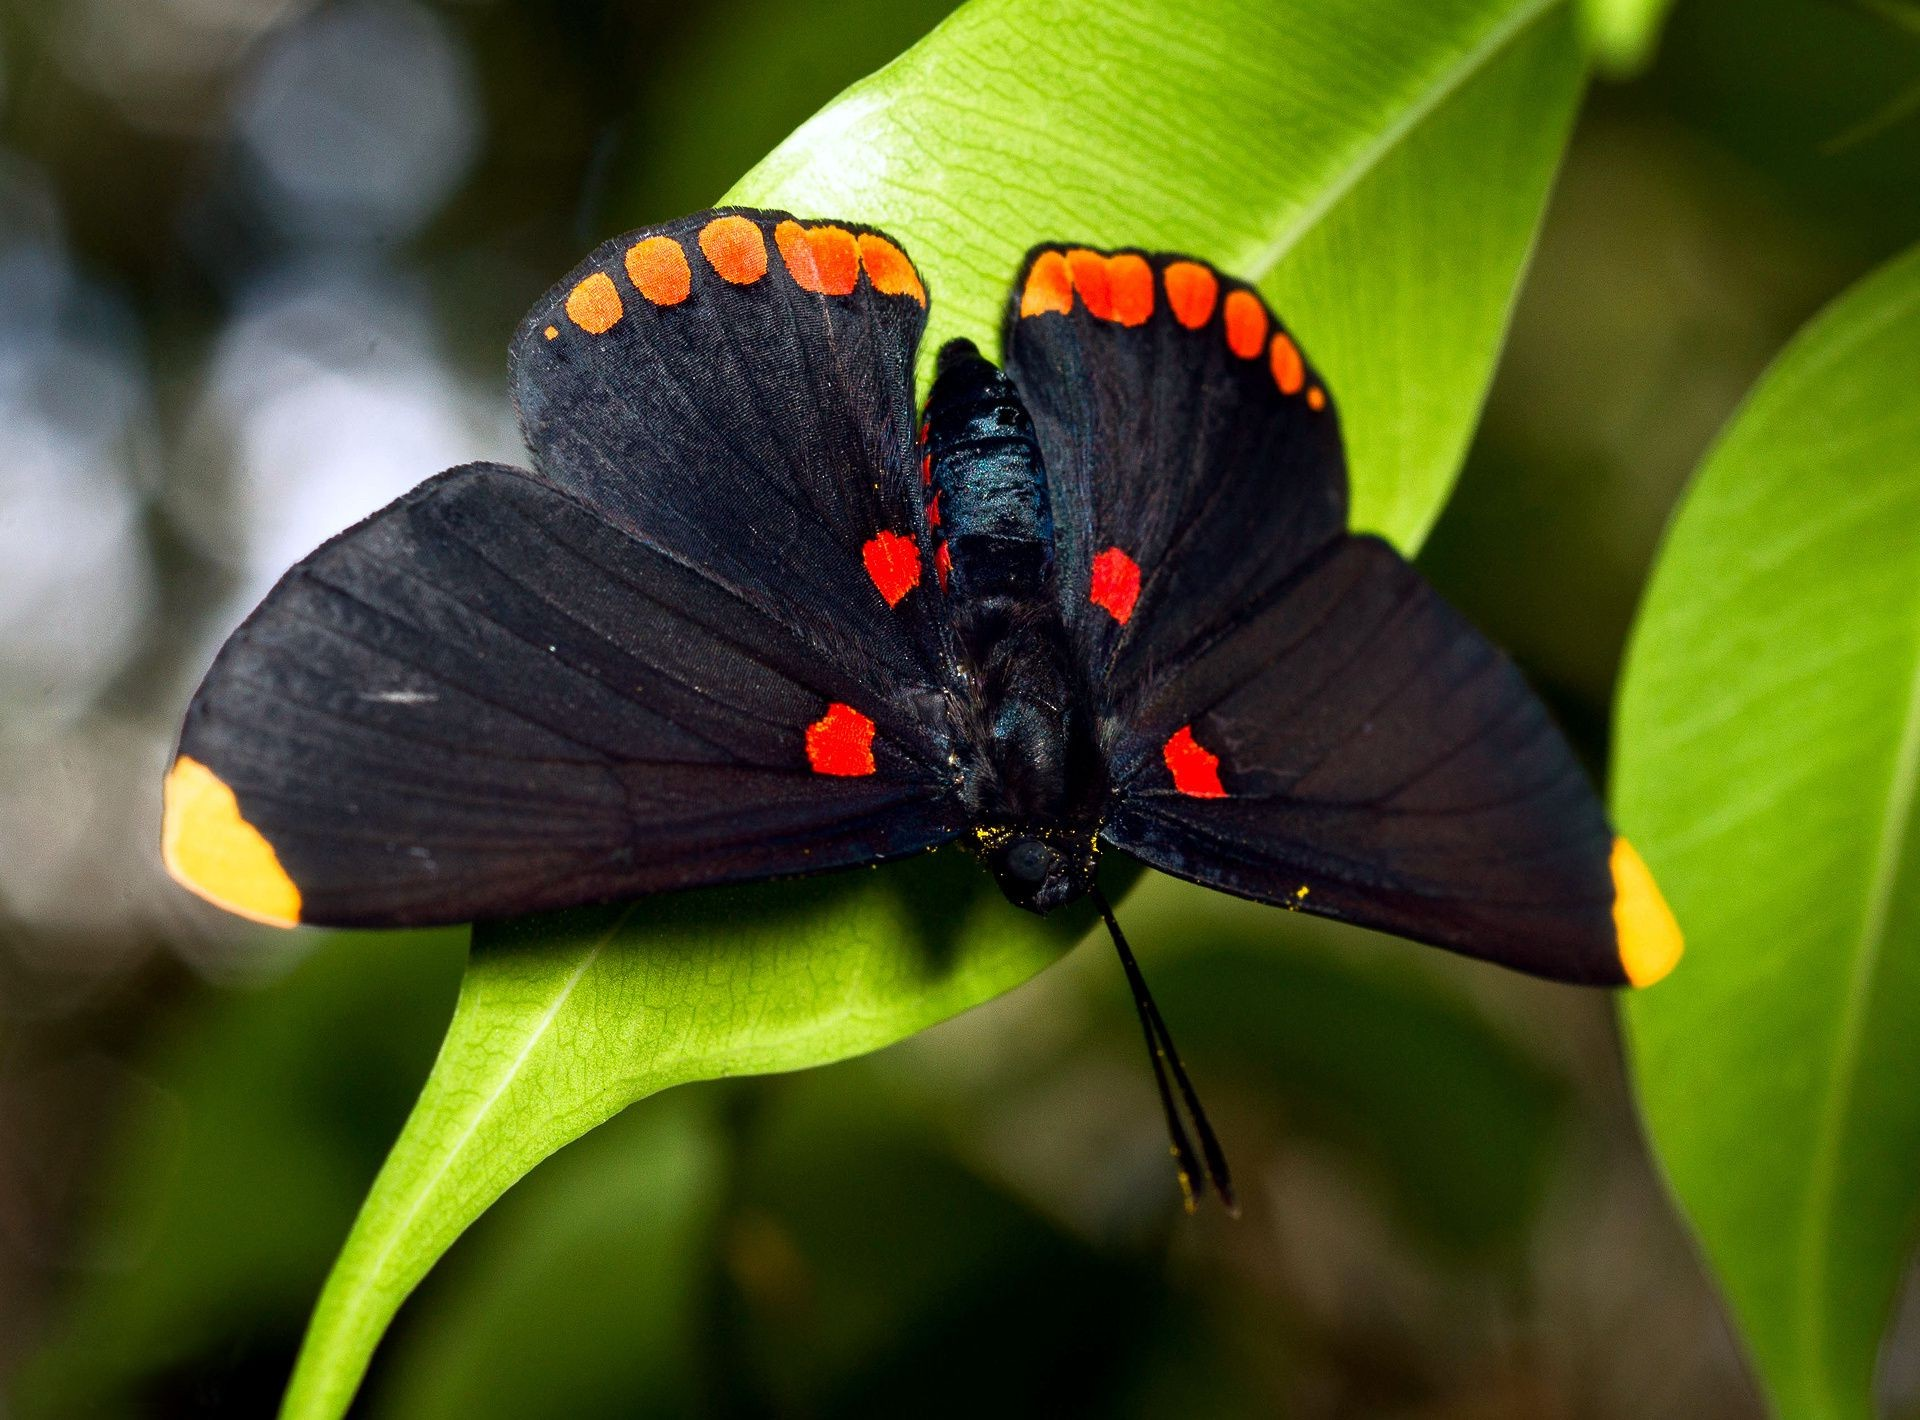 Big black butterfly on the leaf